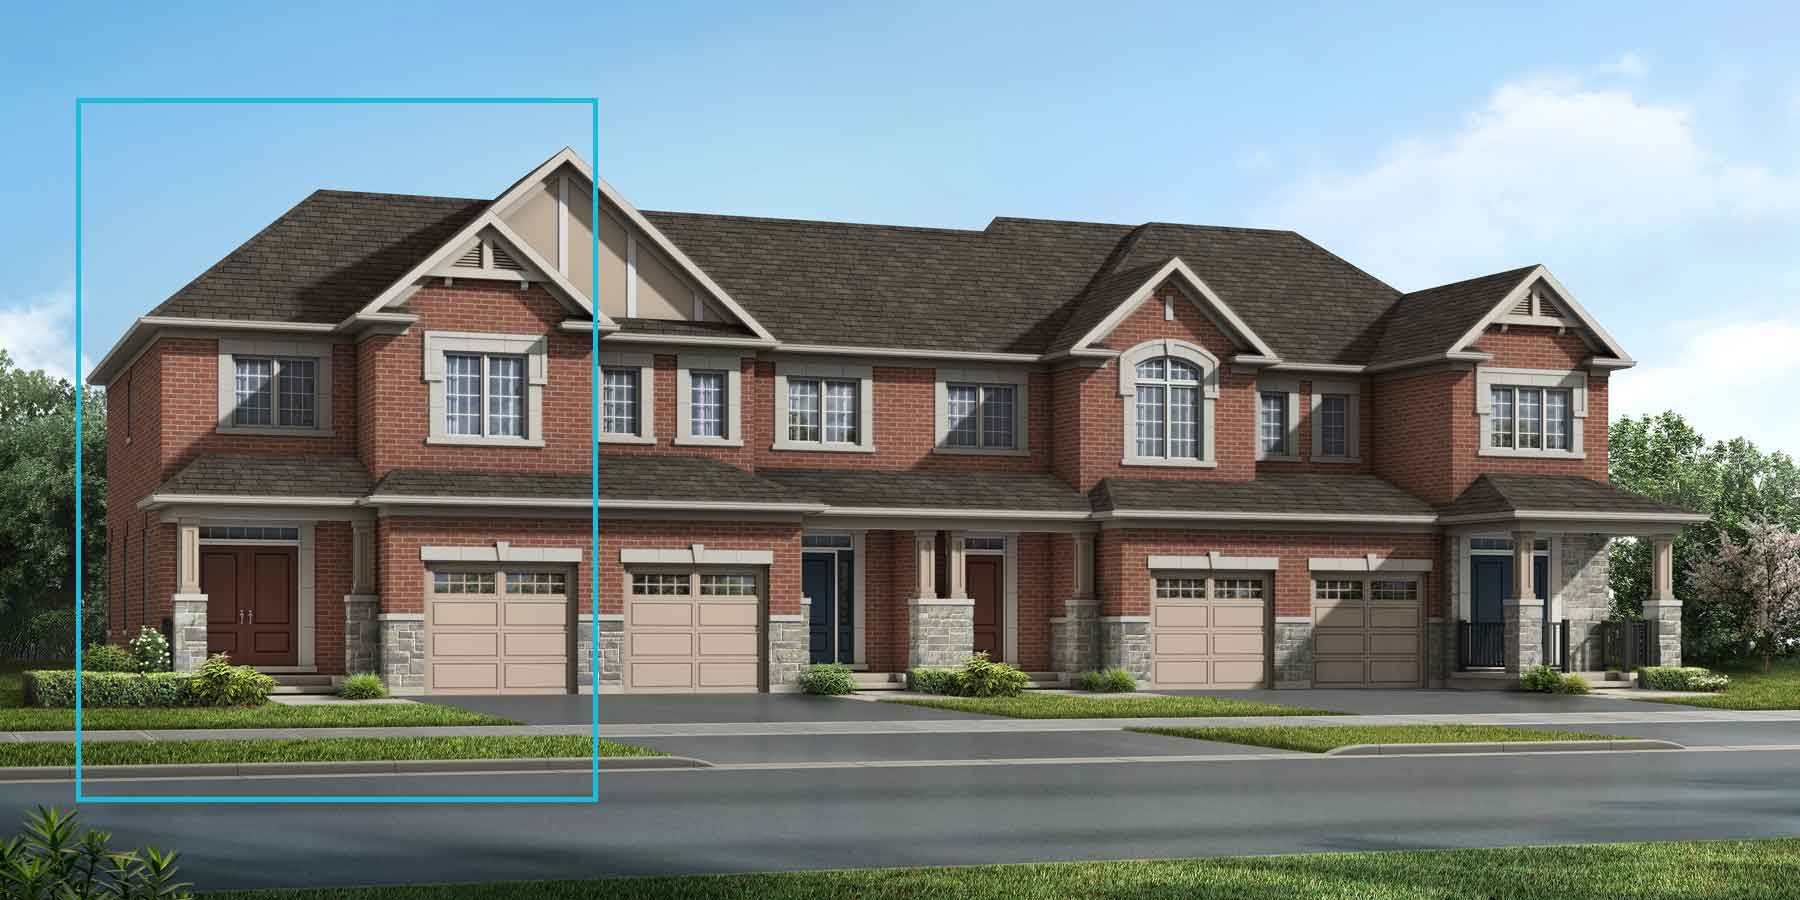 The Millbank End Plan elevationtraditional_southestates_millbankend_main at Wildflower Crossing in Kitchener Ontario by Mattamy Homes